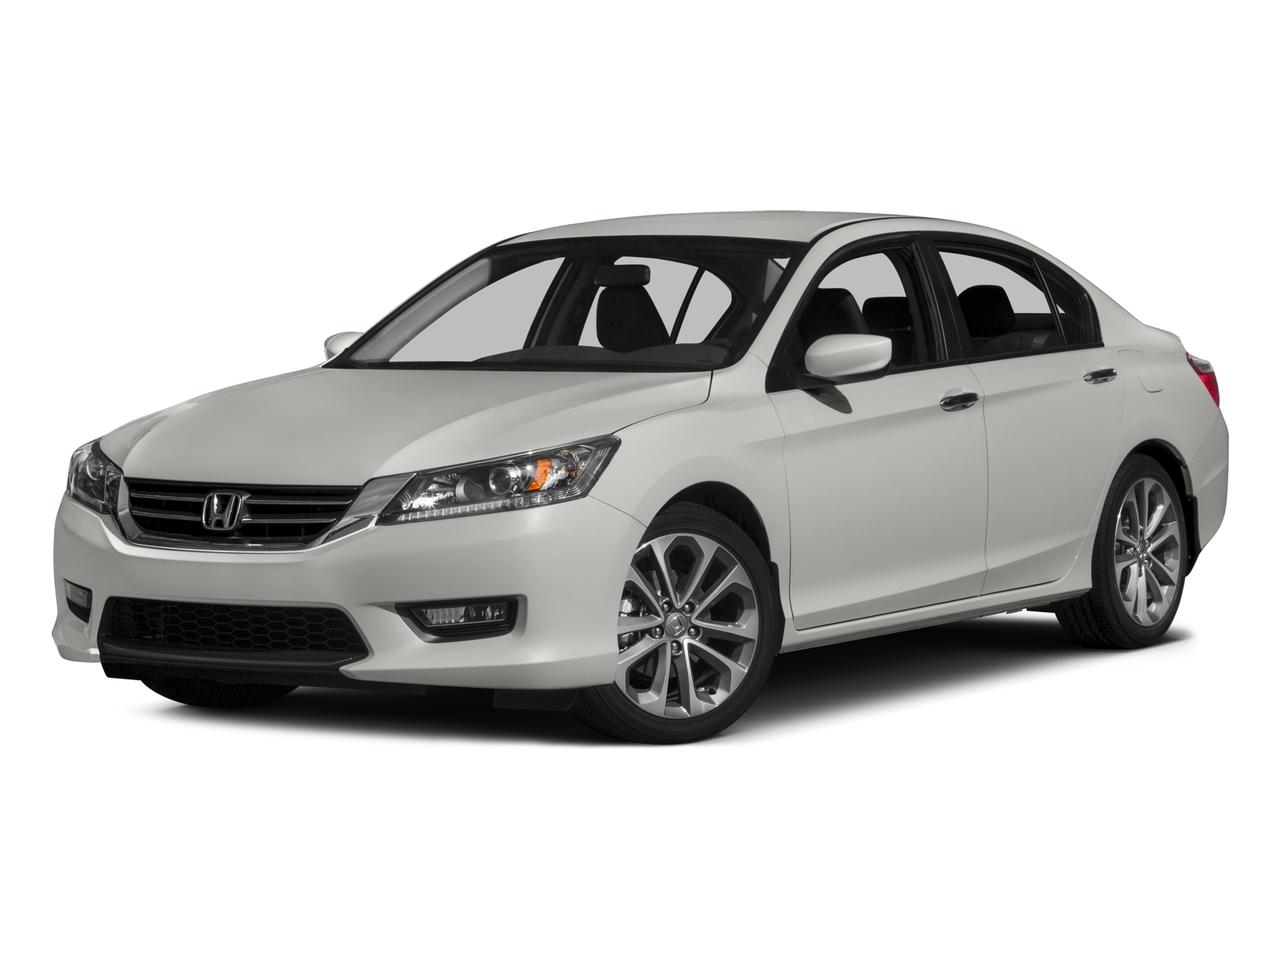 2015 Honda Accord Sedan Vehicle Photo in Newtown, PA 18940